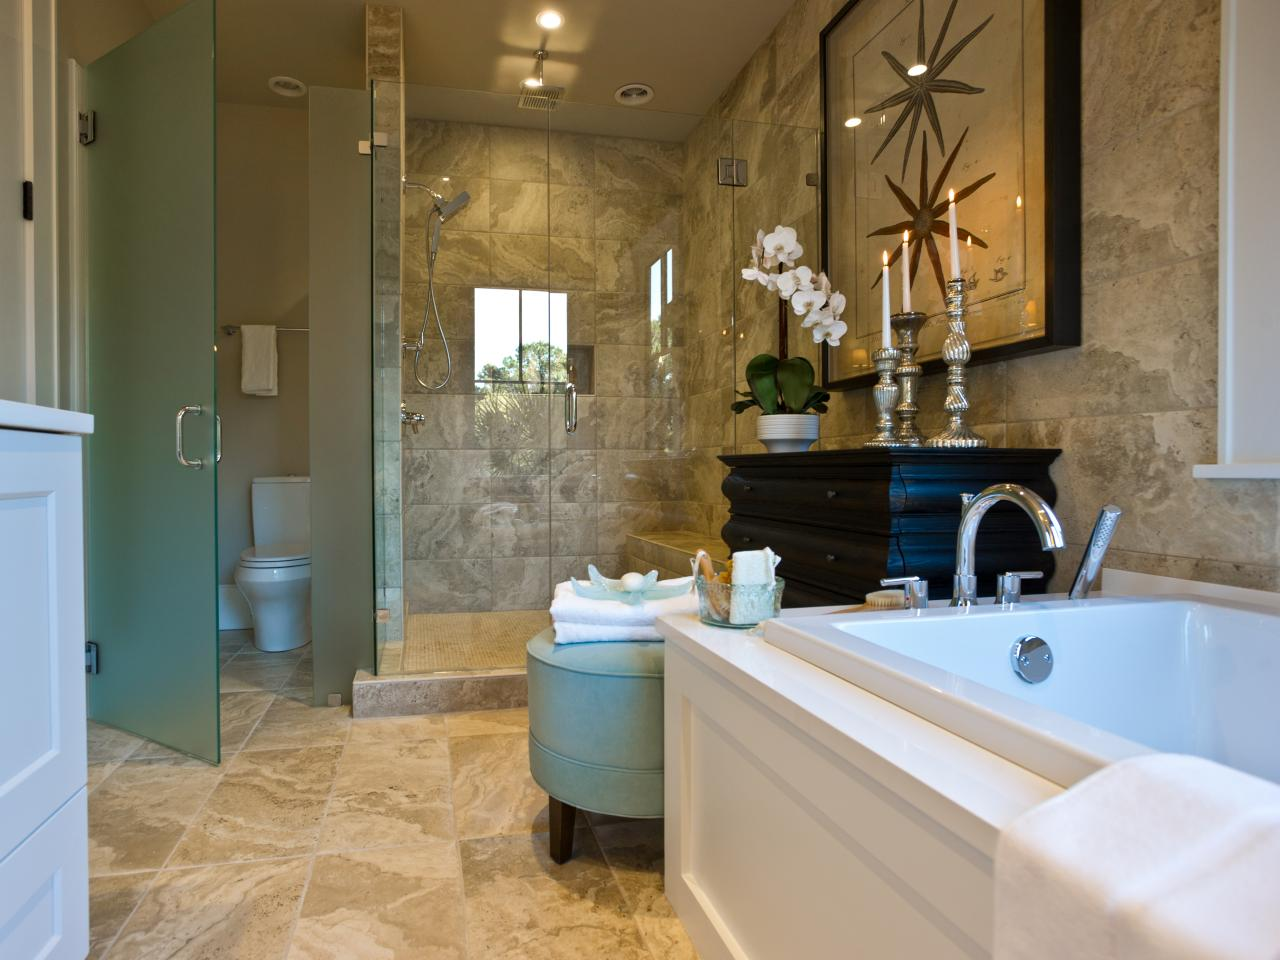 HGTV Dream Home 2013 Master Bathroom Pictures And Video From HGTV Dream Hom